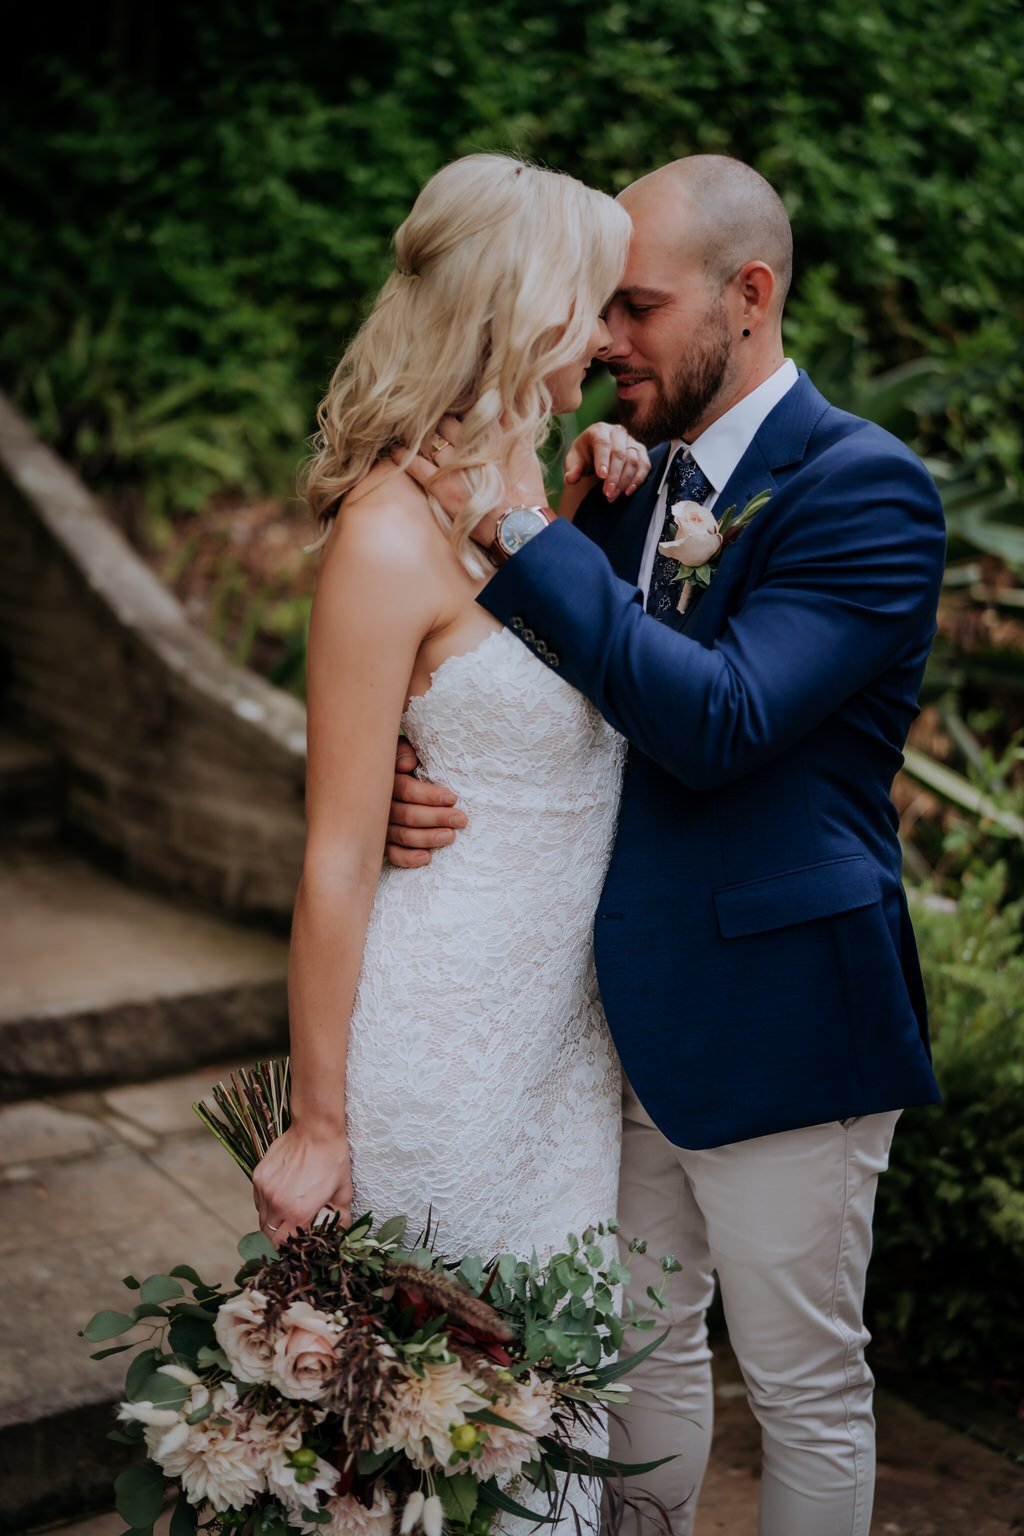 ava-me-photography-jade-simon-loxley-bellbird-hill-kurrajong-heights-wedding-696